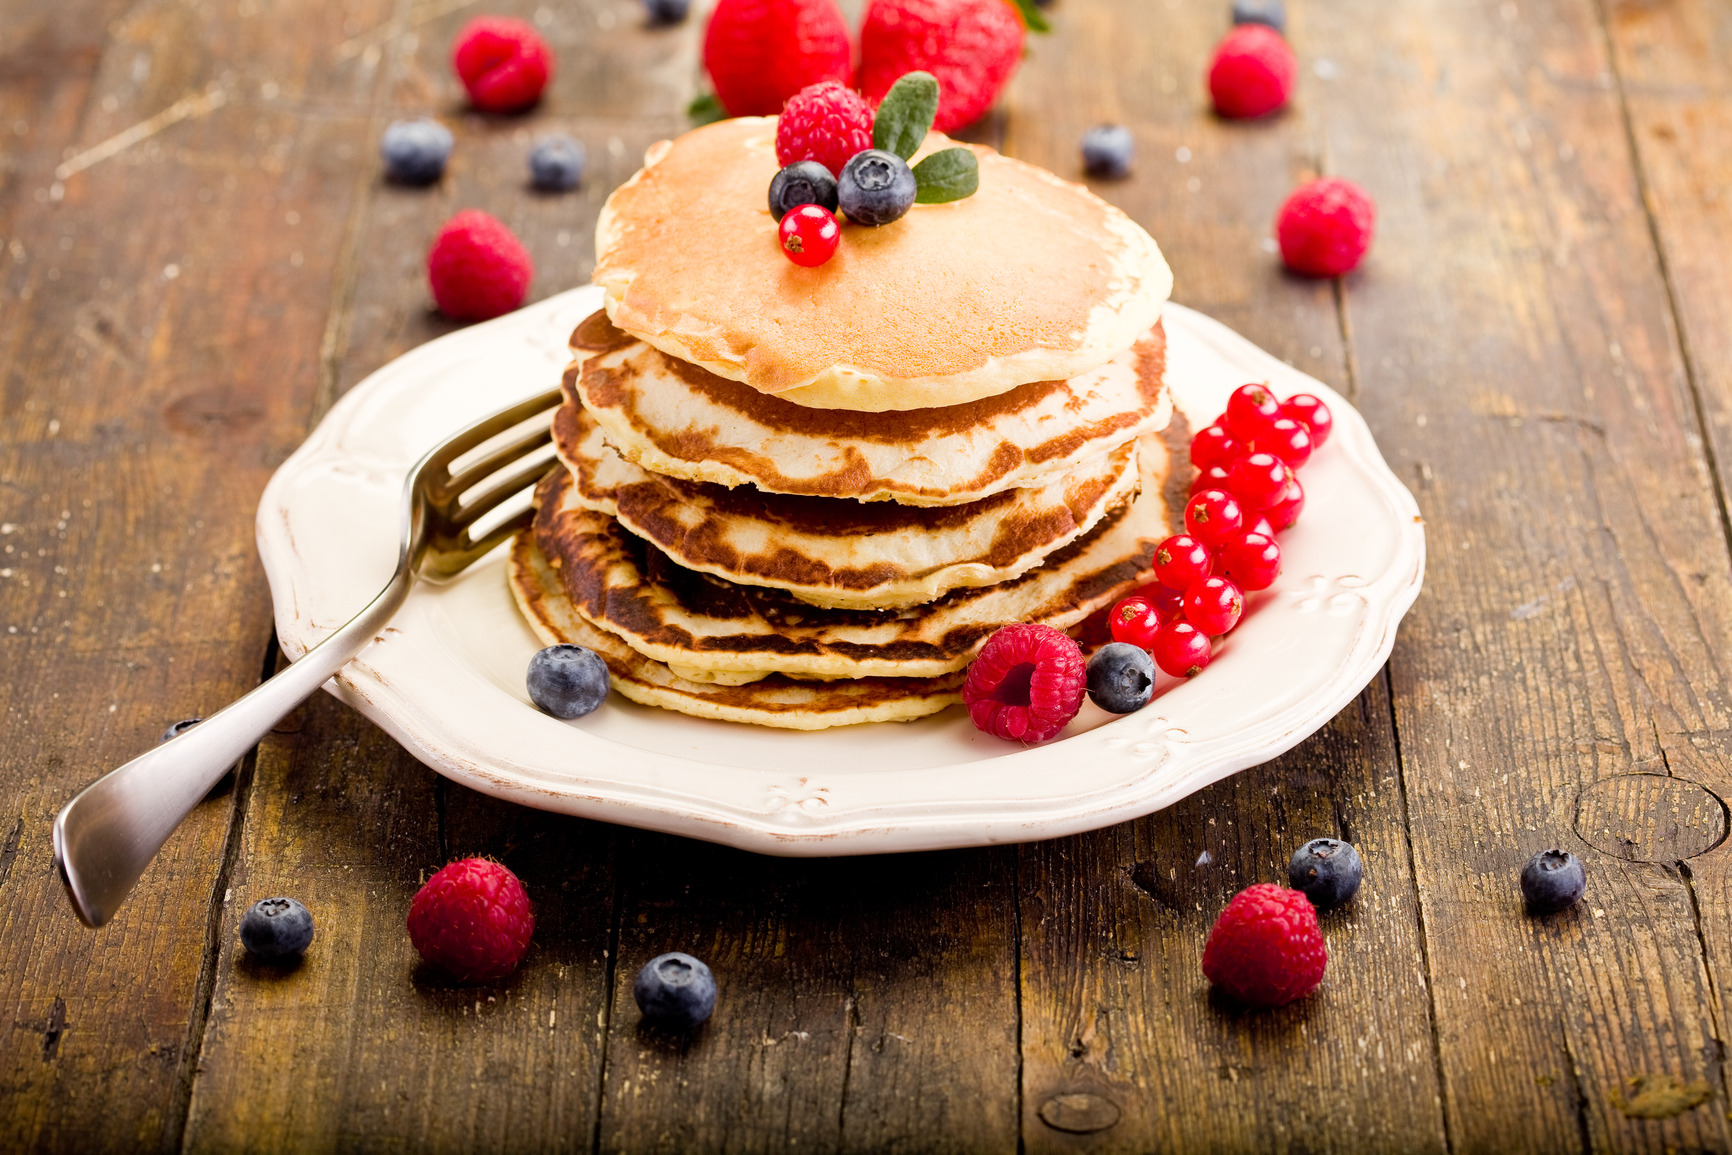 Pancakes on wooden table